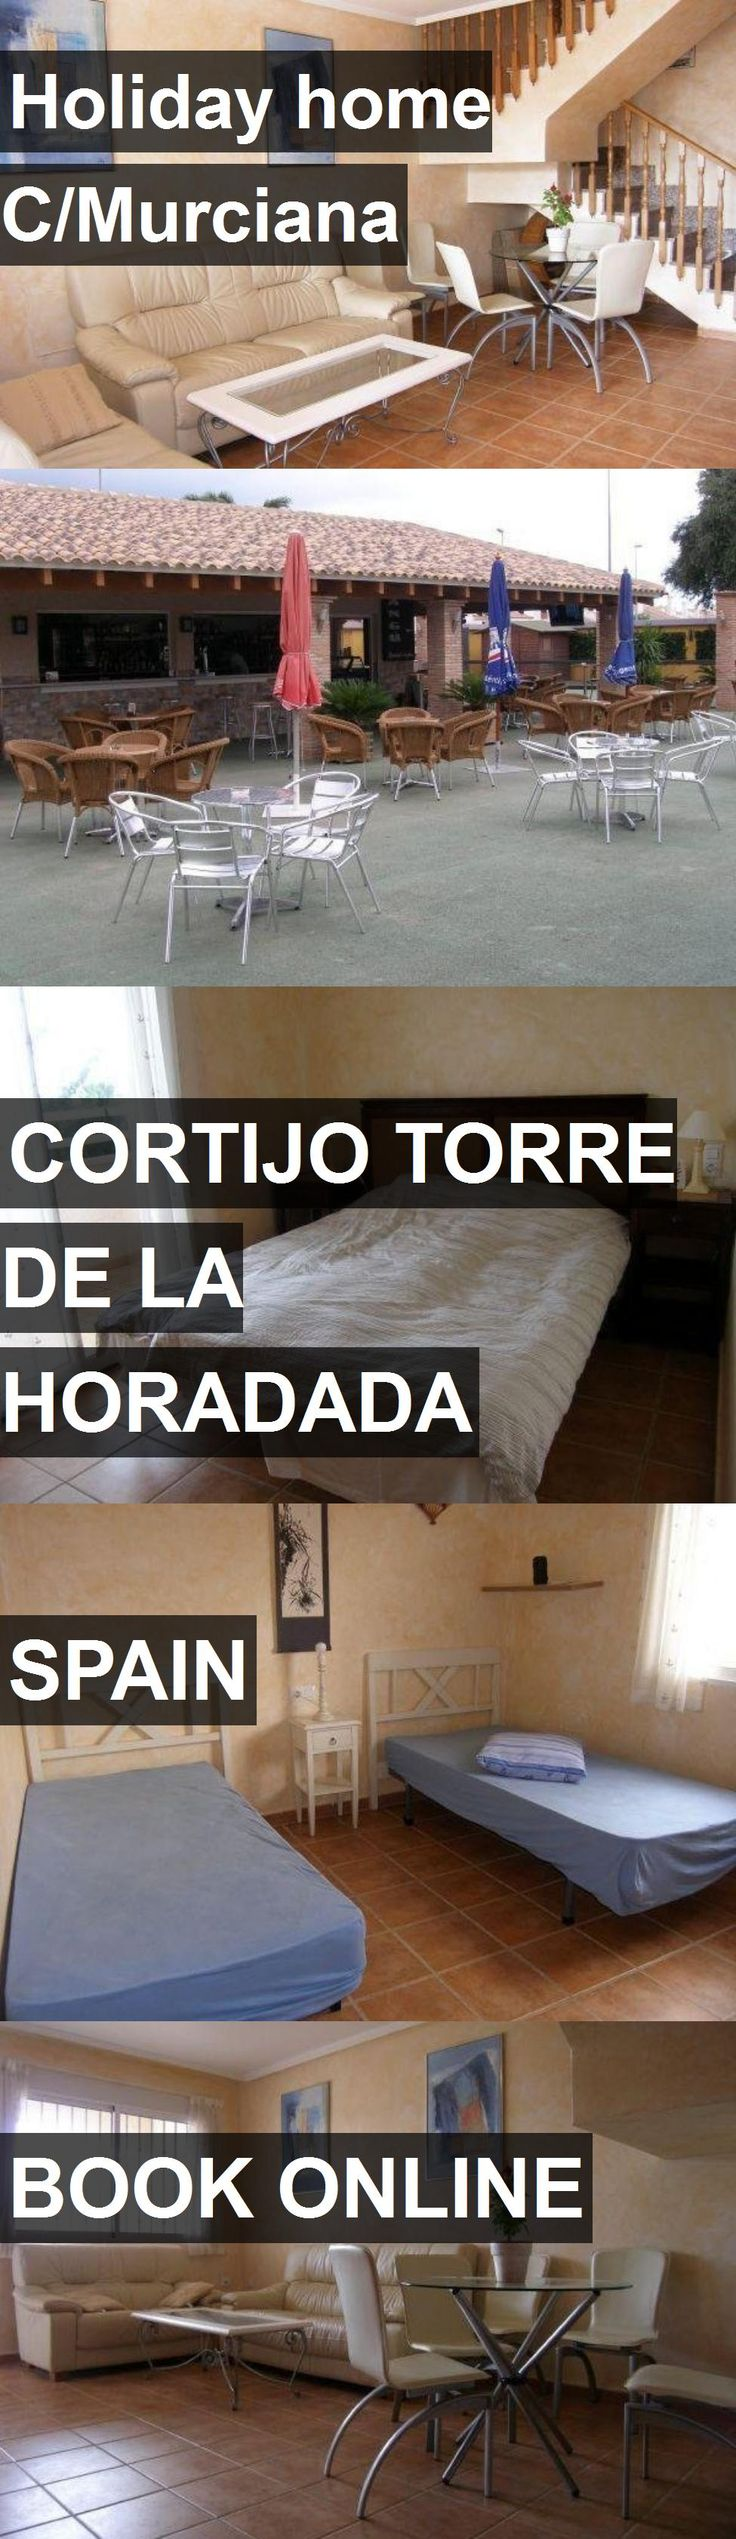 Hotel Holiday home C/Murciana in Cortijo Torre de la Horadada, Spain. For more information, photos, reviews and best prices please follow the link. #Spain #CortijoTorredelaHoradada #travel #vacation #hotel